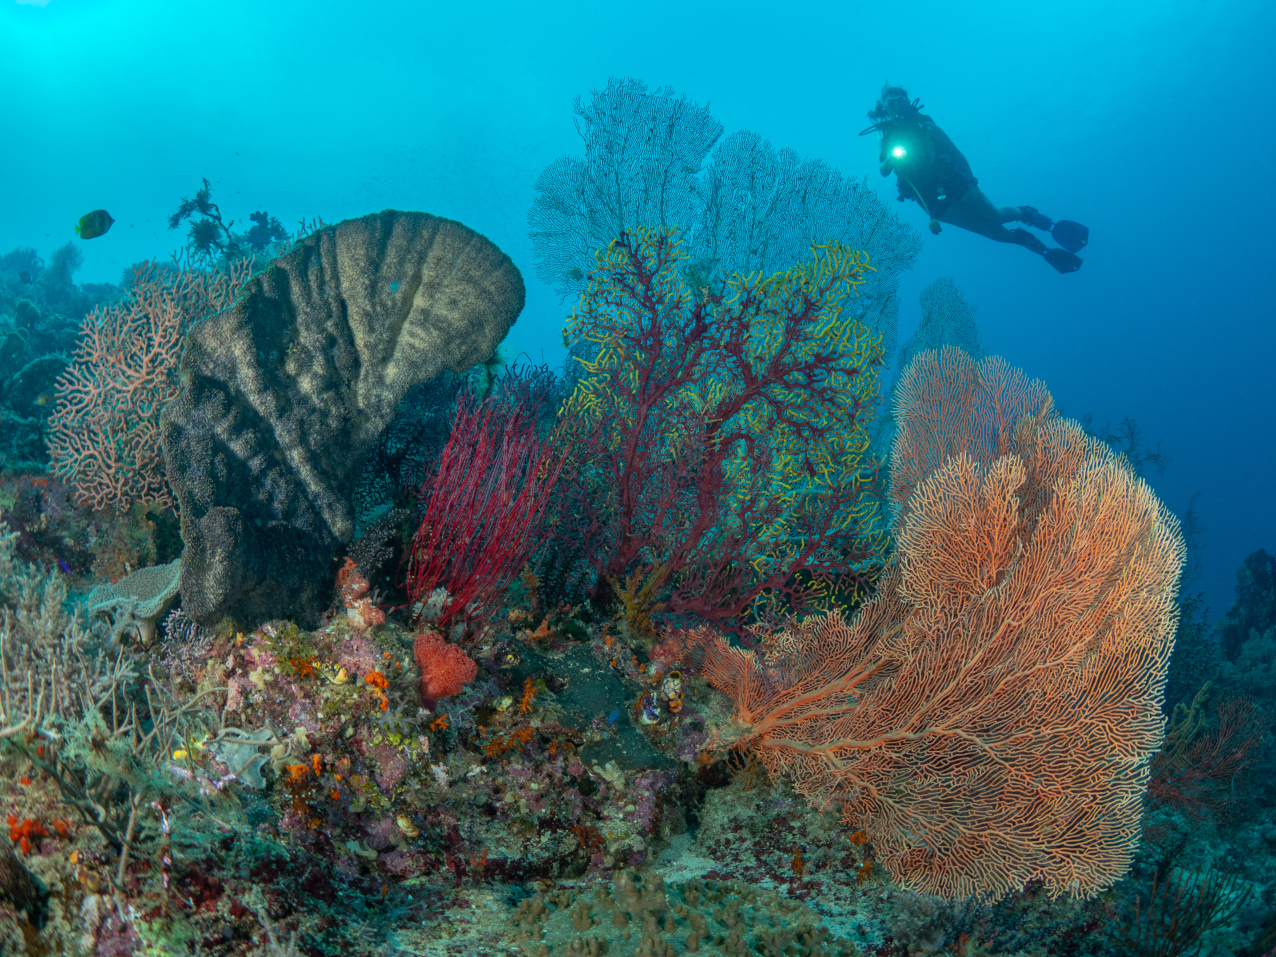 several aquatic plants in fan-shape with a scuba diver in the background